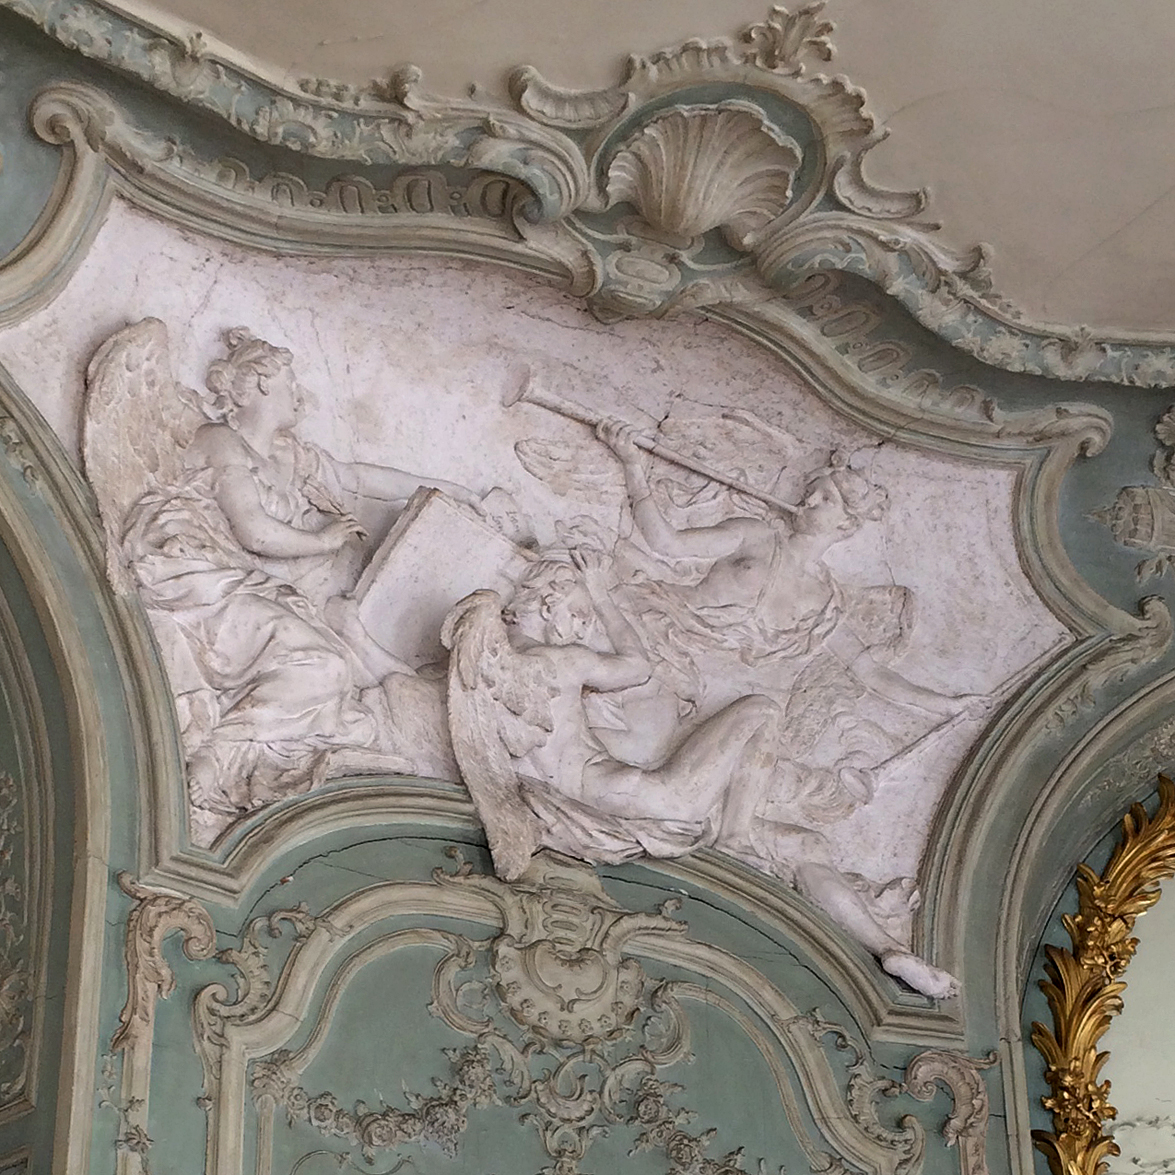 Hôtel de Soubise, ceiling detail of the Prince's apartment on the ground floor.